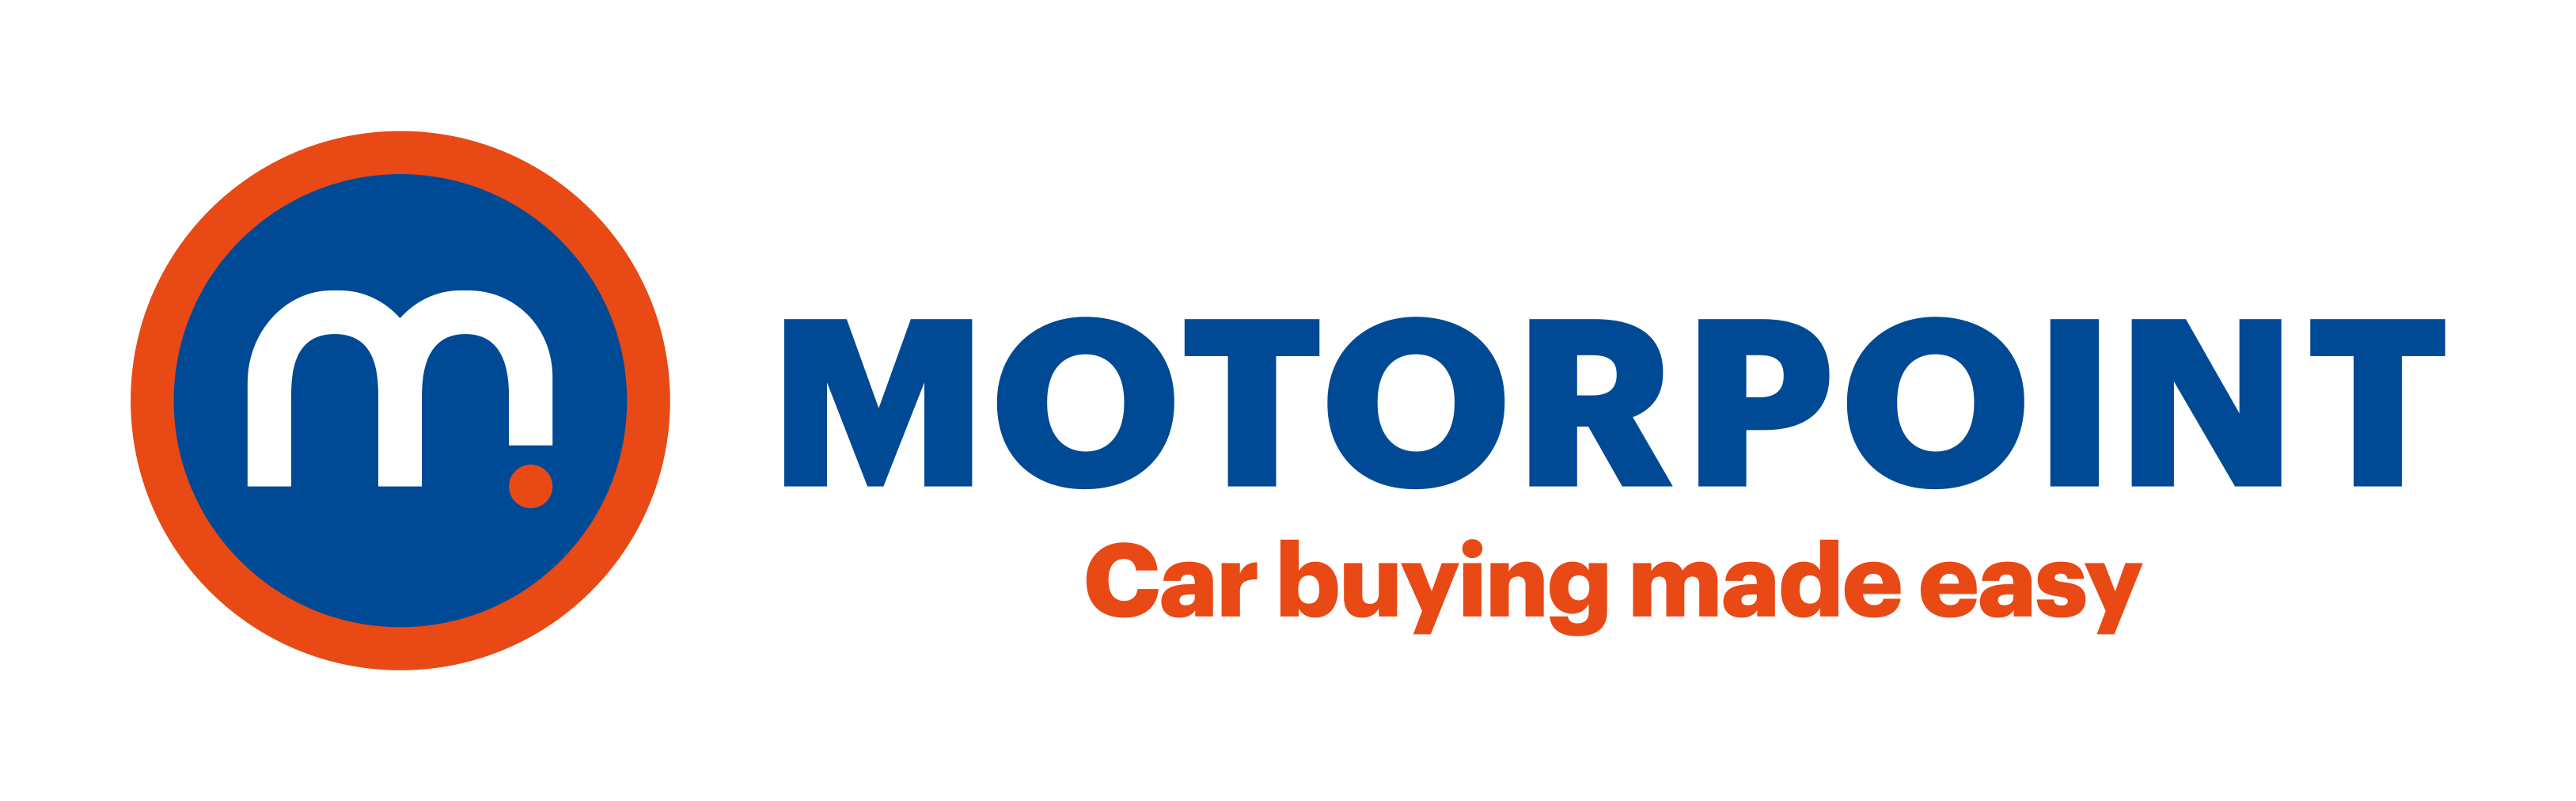 Motorpoint Group Plc Logo